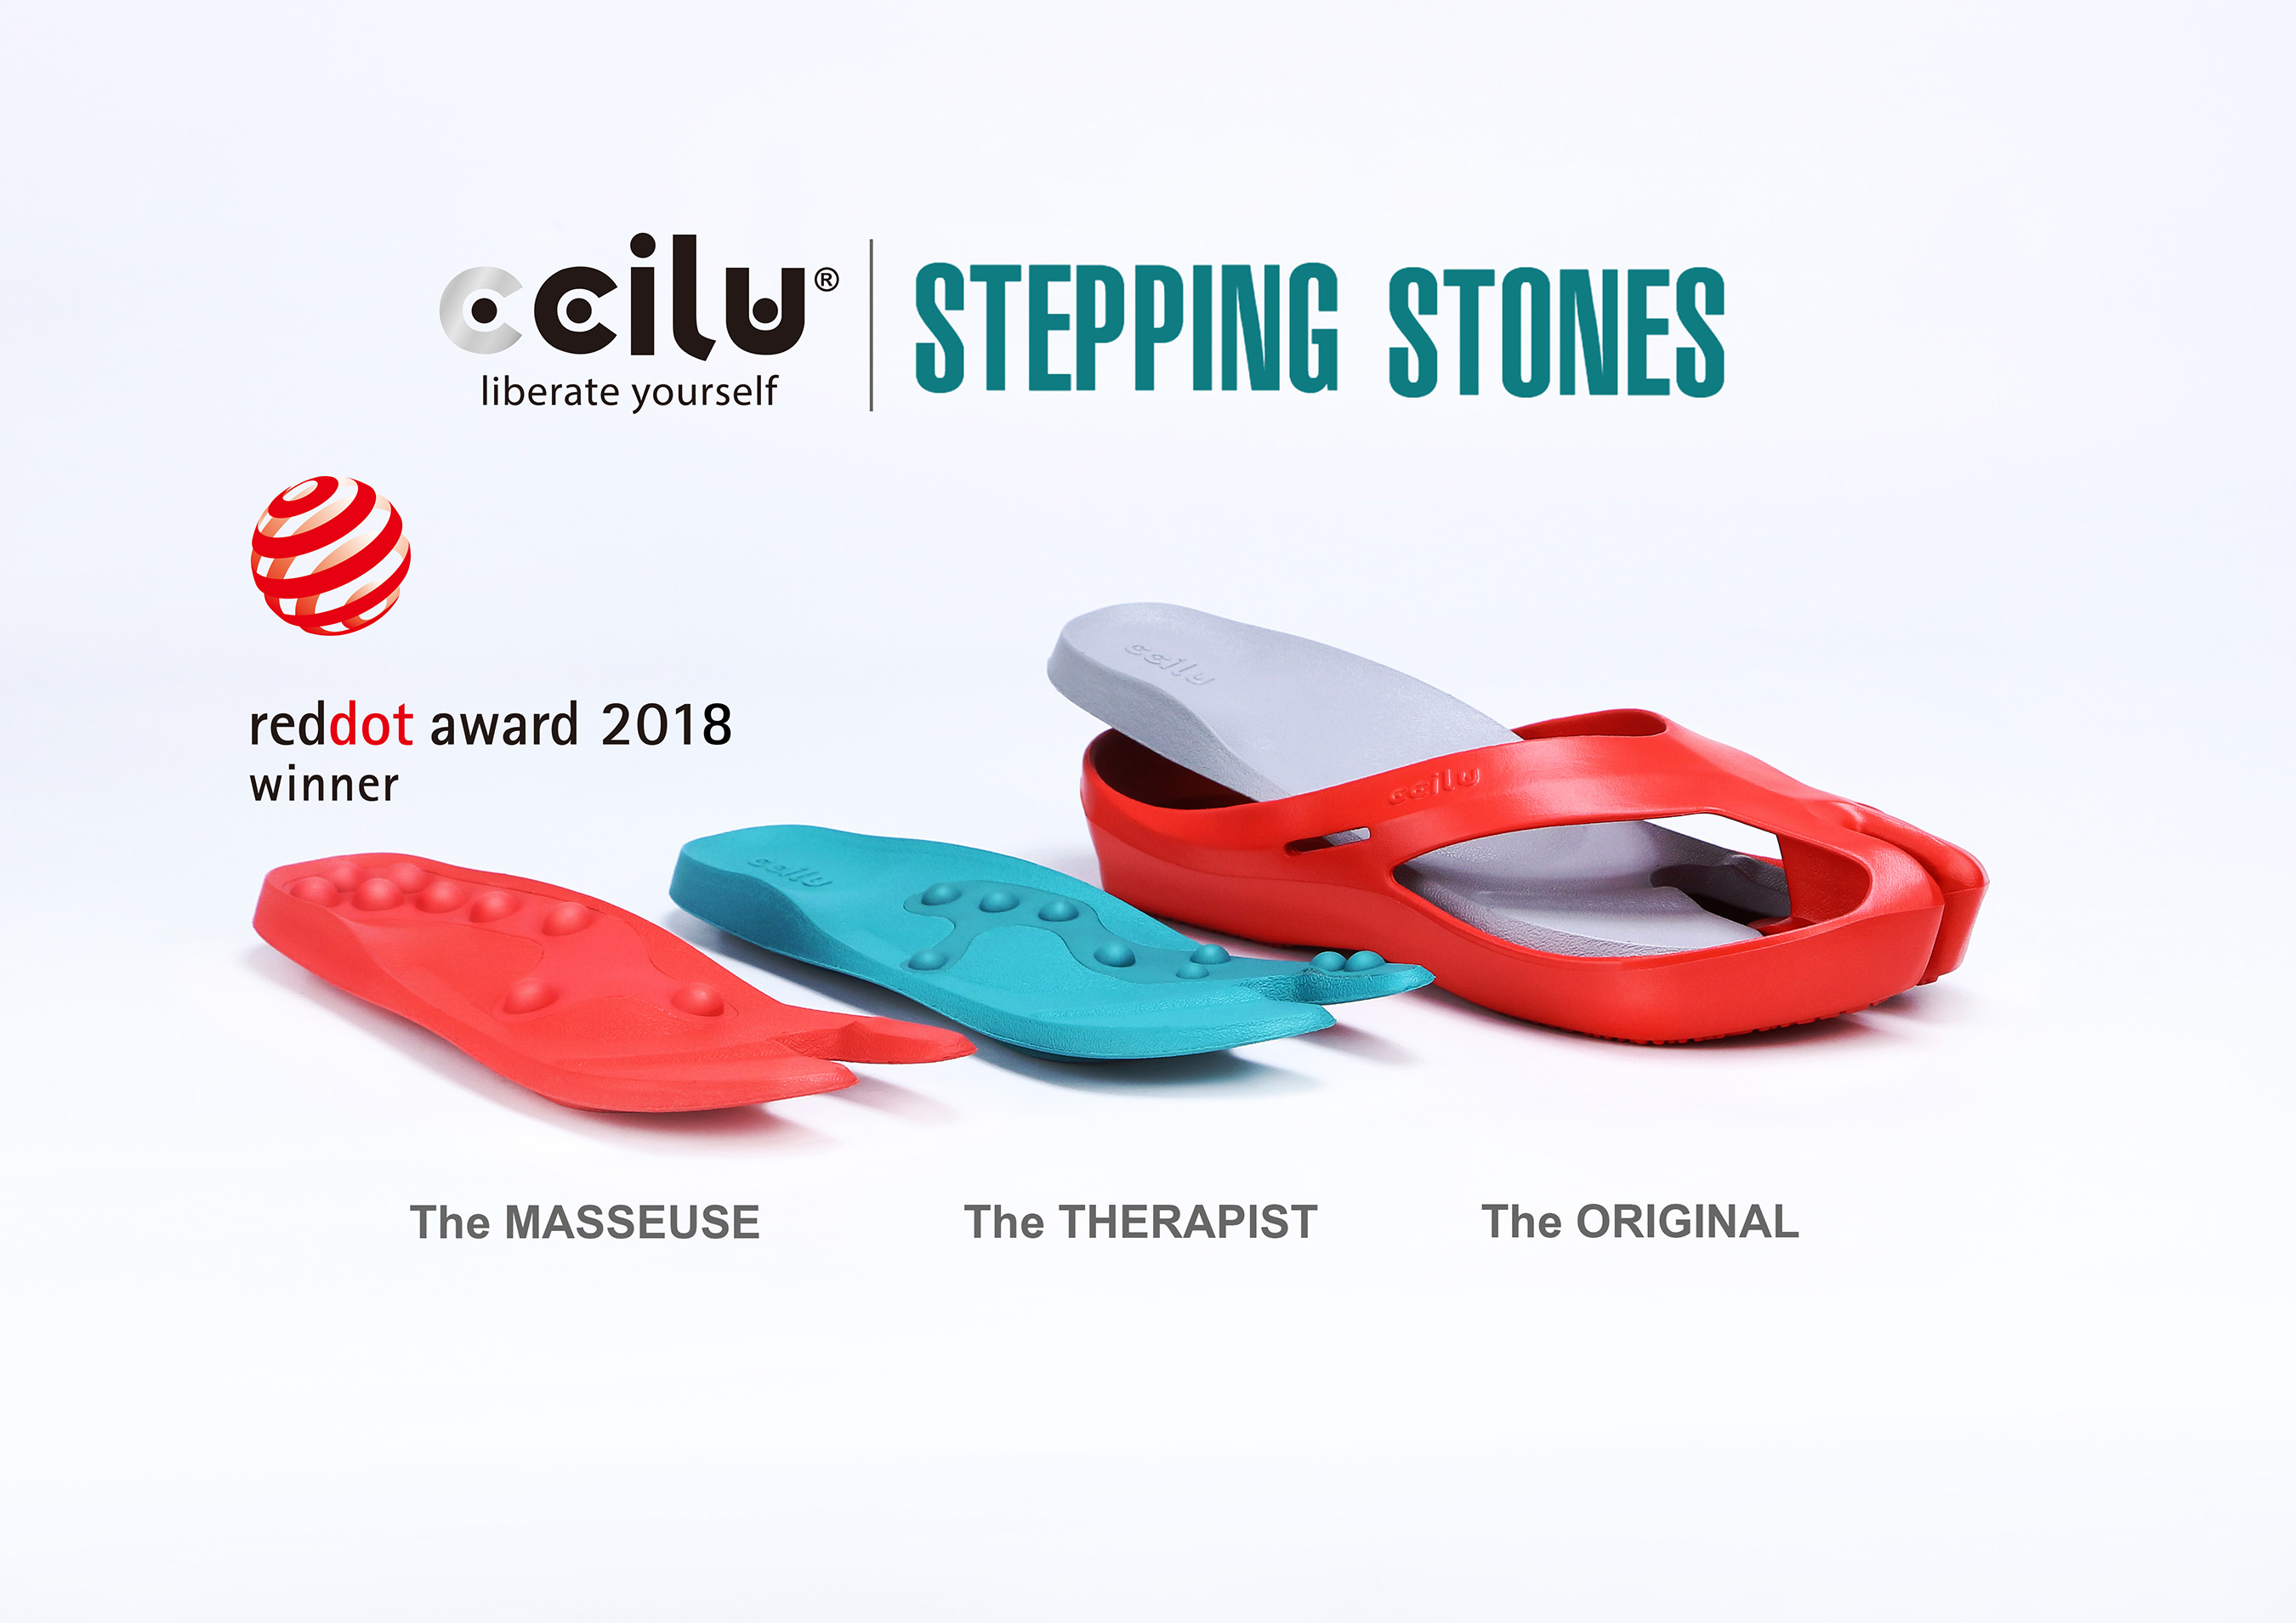 Ccilu S Stepping Stone Sandal Wins Red Dot Design Award In Time For Summer